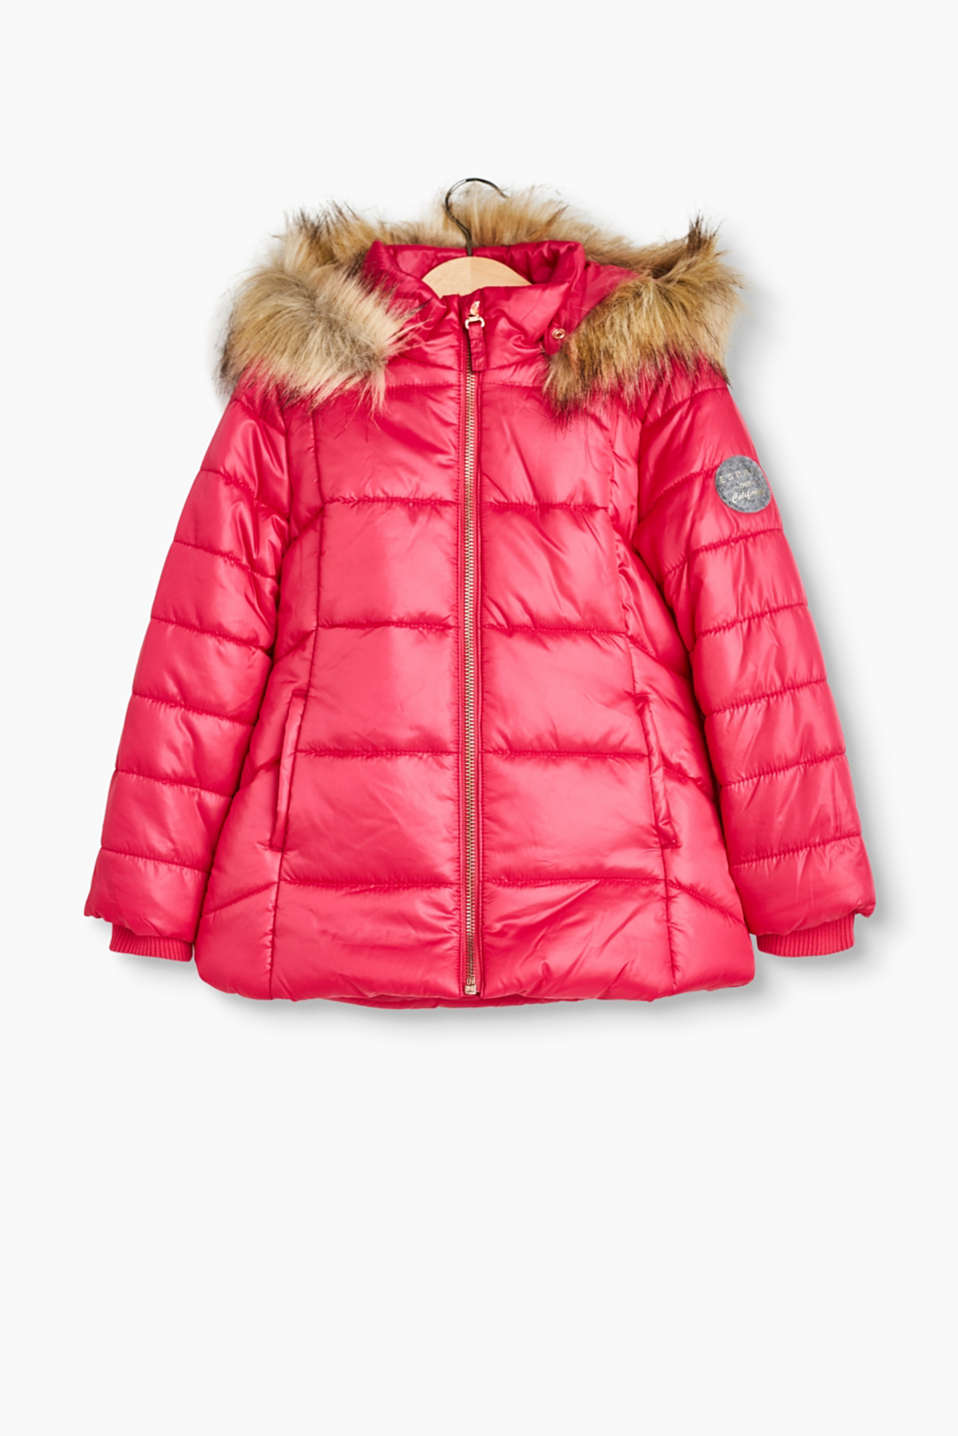 Warm padded quilted jacket with a button-off hood and woven fur trim